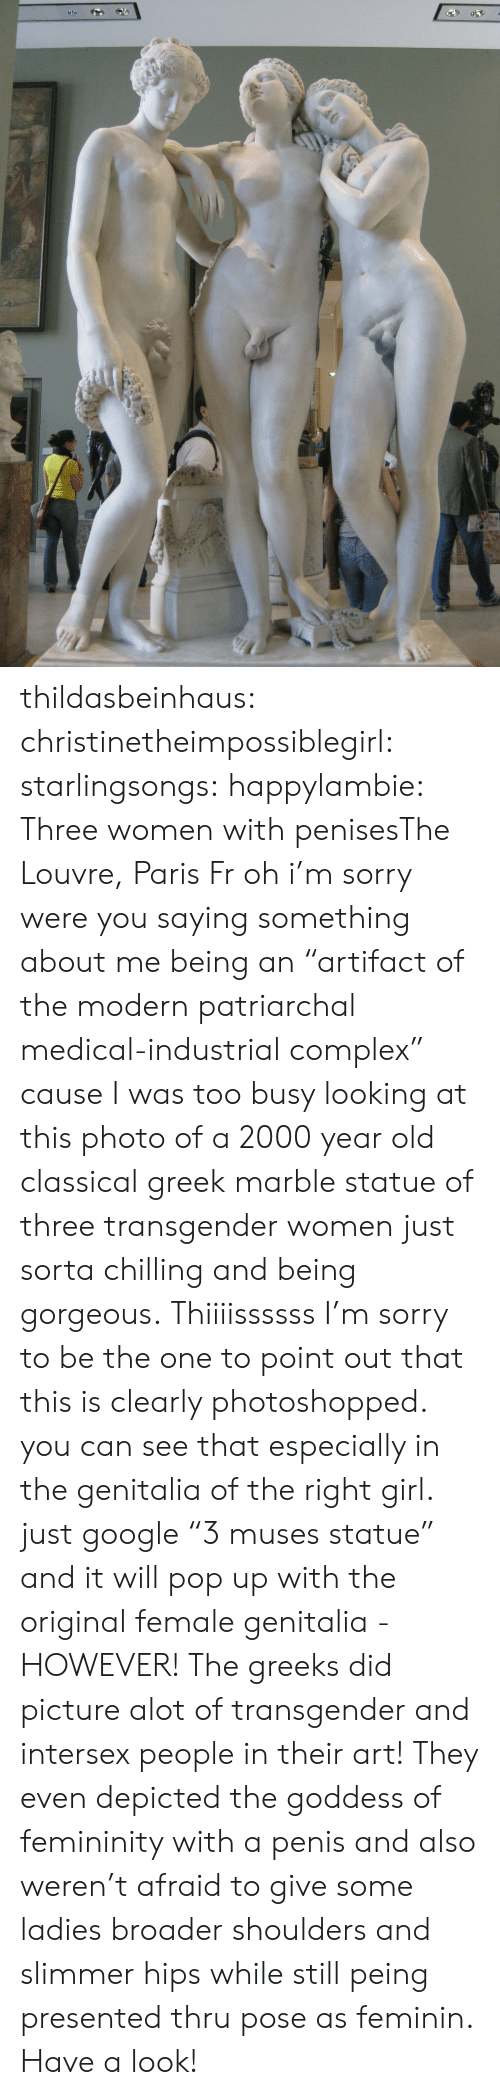 """Complex, Google, and Pop: thildasbeinhaus:  christinetheimpossiblegirl:  starlingsongs:  happylambie:  Three women with penisesThe Louvre, Paris Fr  oh i'm sorry were you saying something about me being an """"artifact of the modern patriarchal medical-industrial complex"""" cause I was too busy looking at this photo of a 2000 year old classical greek marble statue of three transgender women just sorta chilling and being gorgeous.  Thiiiissssss  I'm sorry to be the one to point out that this is clearly photoshopped. you can see that especially in the genitalia of the right girl. just google""""3 muses statue"""" and it will pop up with the original female genitalia - HOWEVER! The greeks did picture alot of transgender and intersex people in their art! They even depicted the goddess of femininity with a penis and also weren't afraid to give some ladies broader shoulders and slimmer hips while still peing presented thru pose as feminin. Have a look!"""